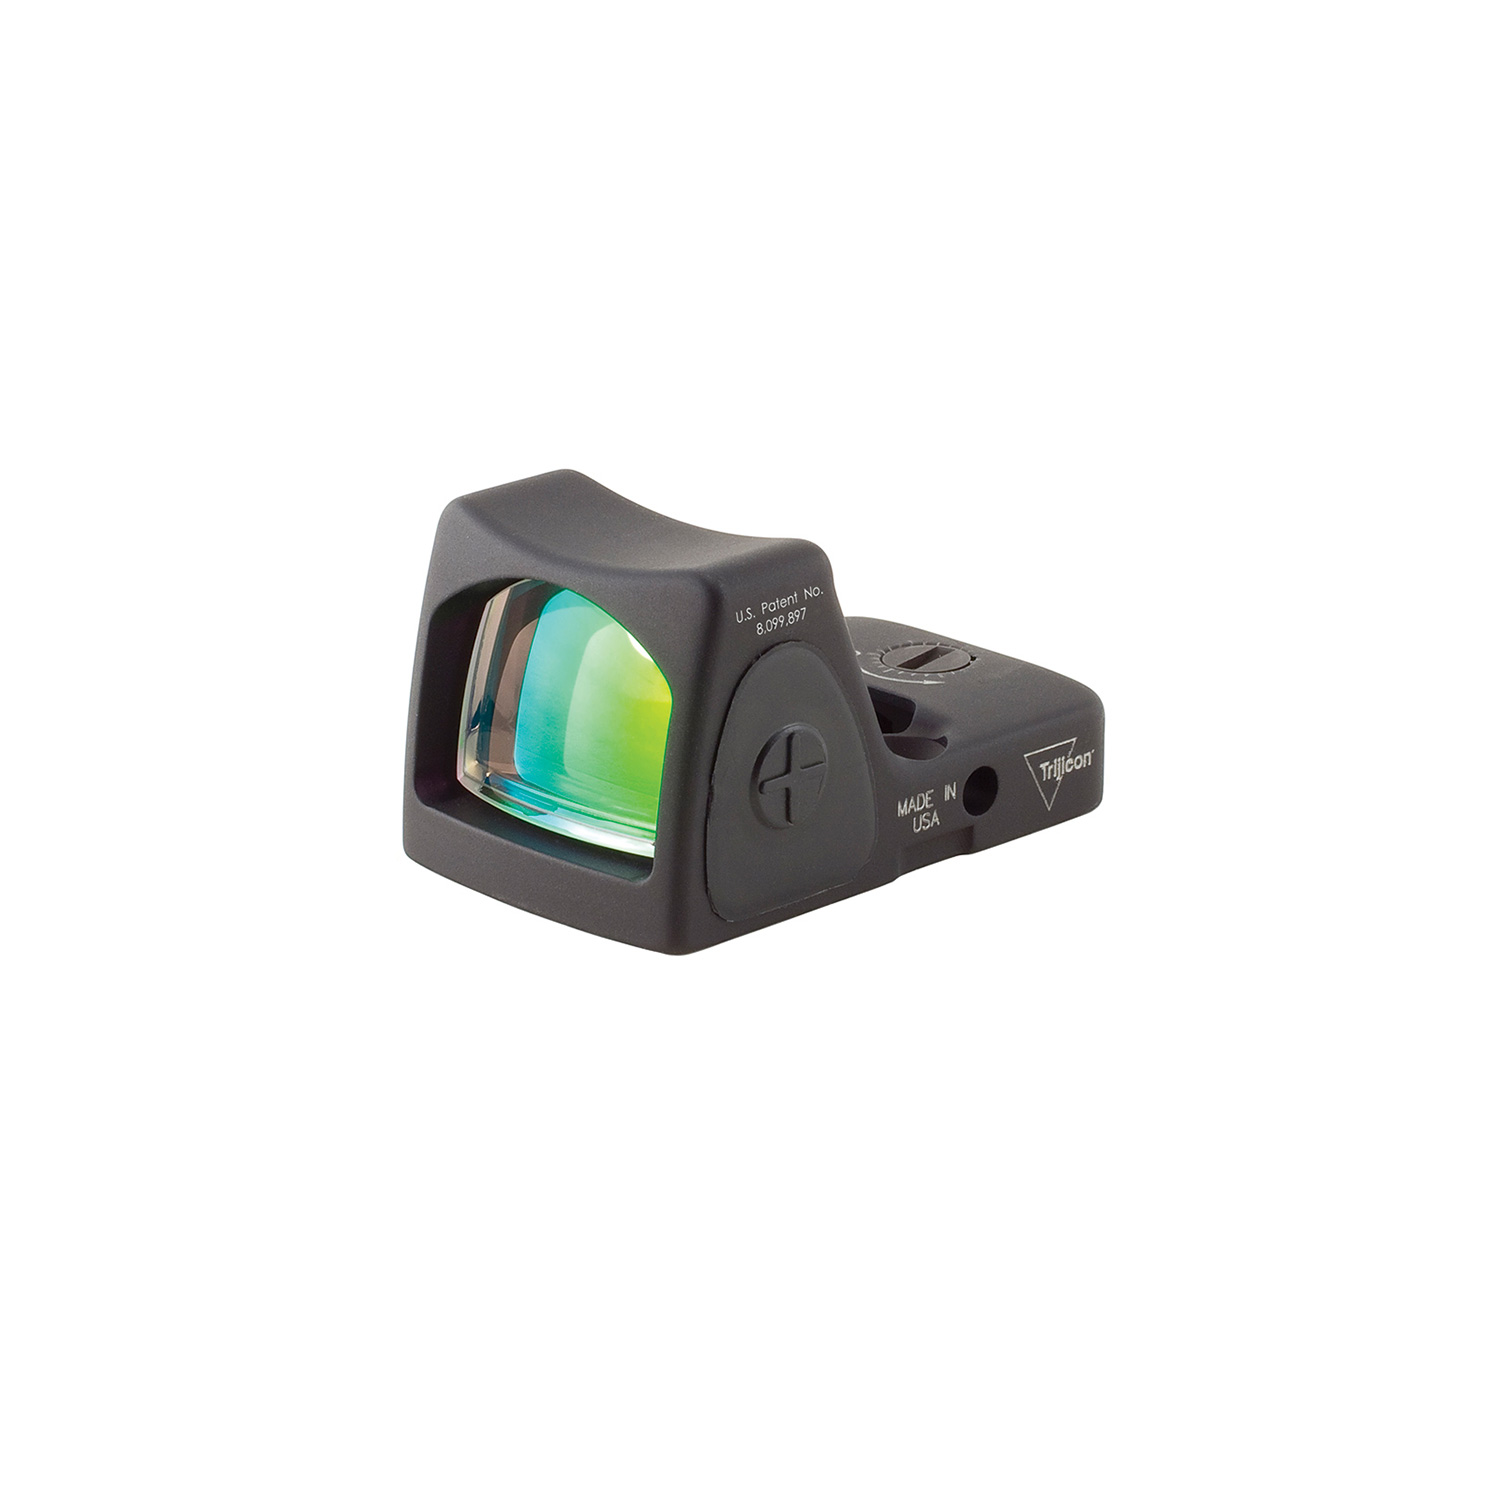 2. Trijicon RMR Type 2 Adjustable Red Dot Sight